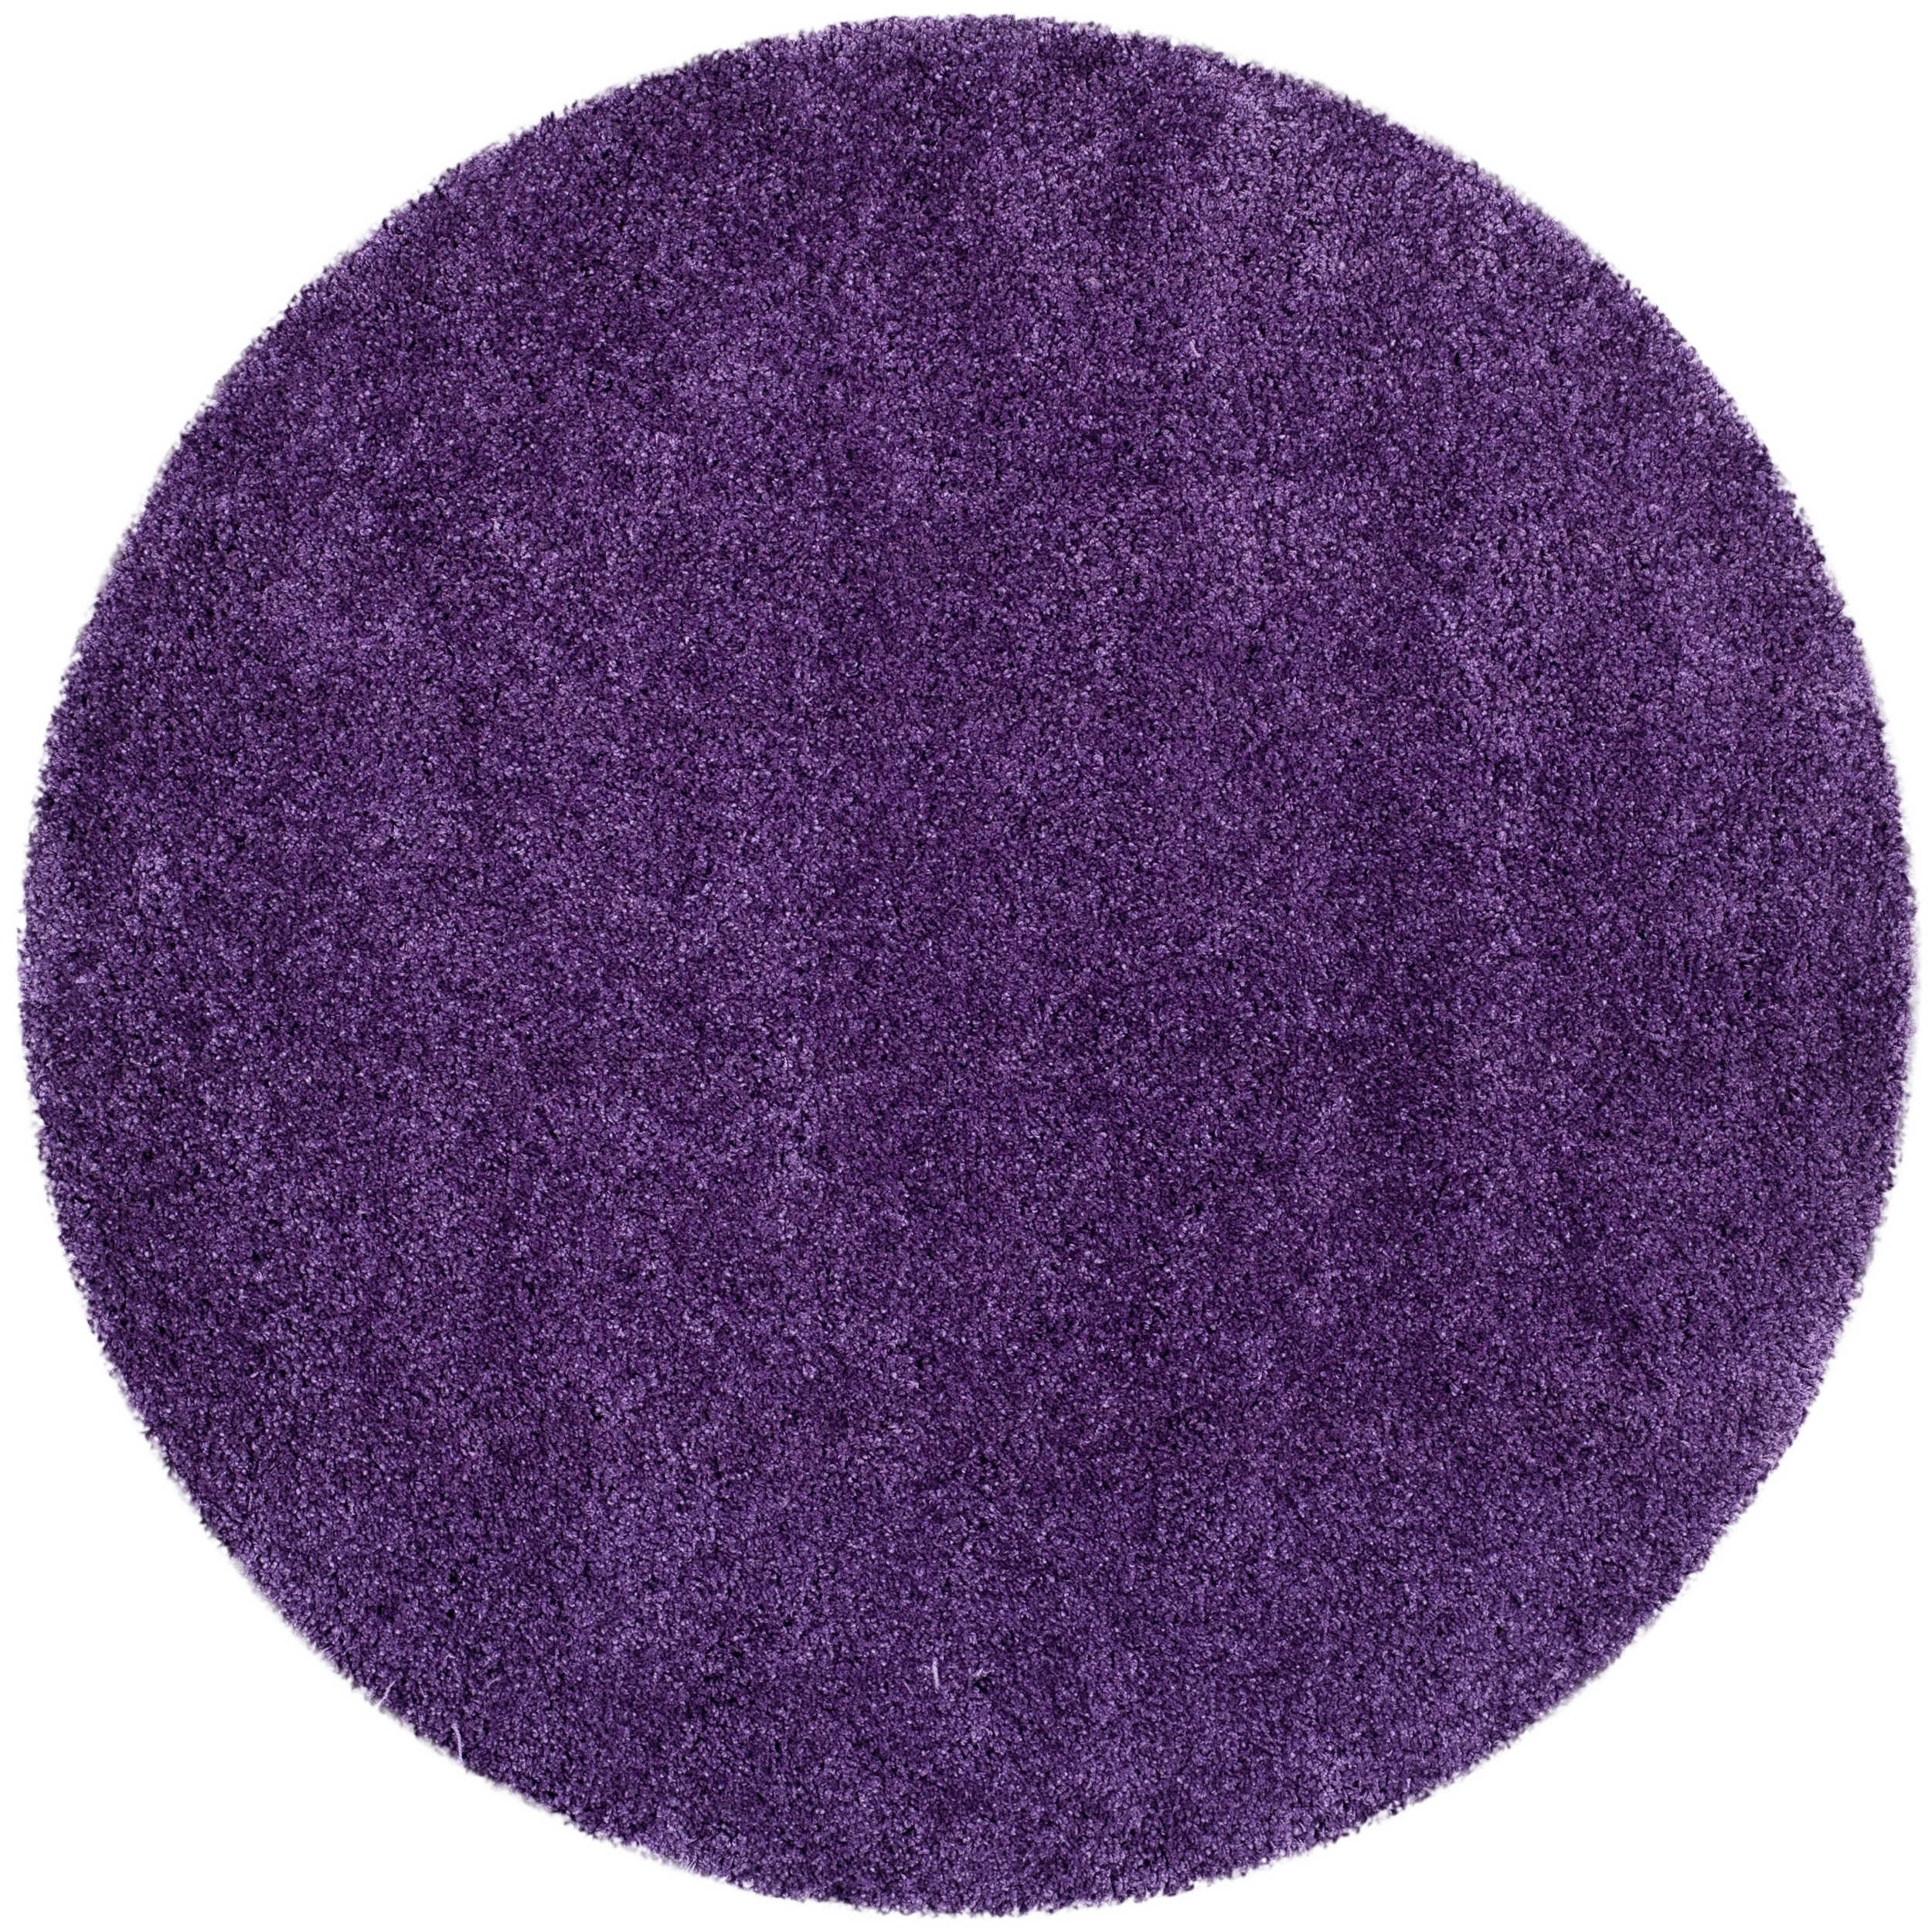 Safavieh Milan shag purple